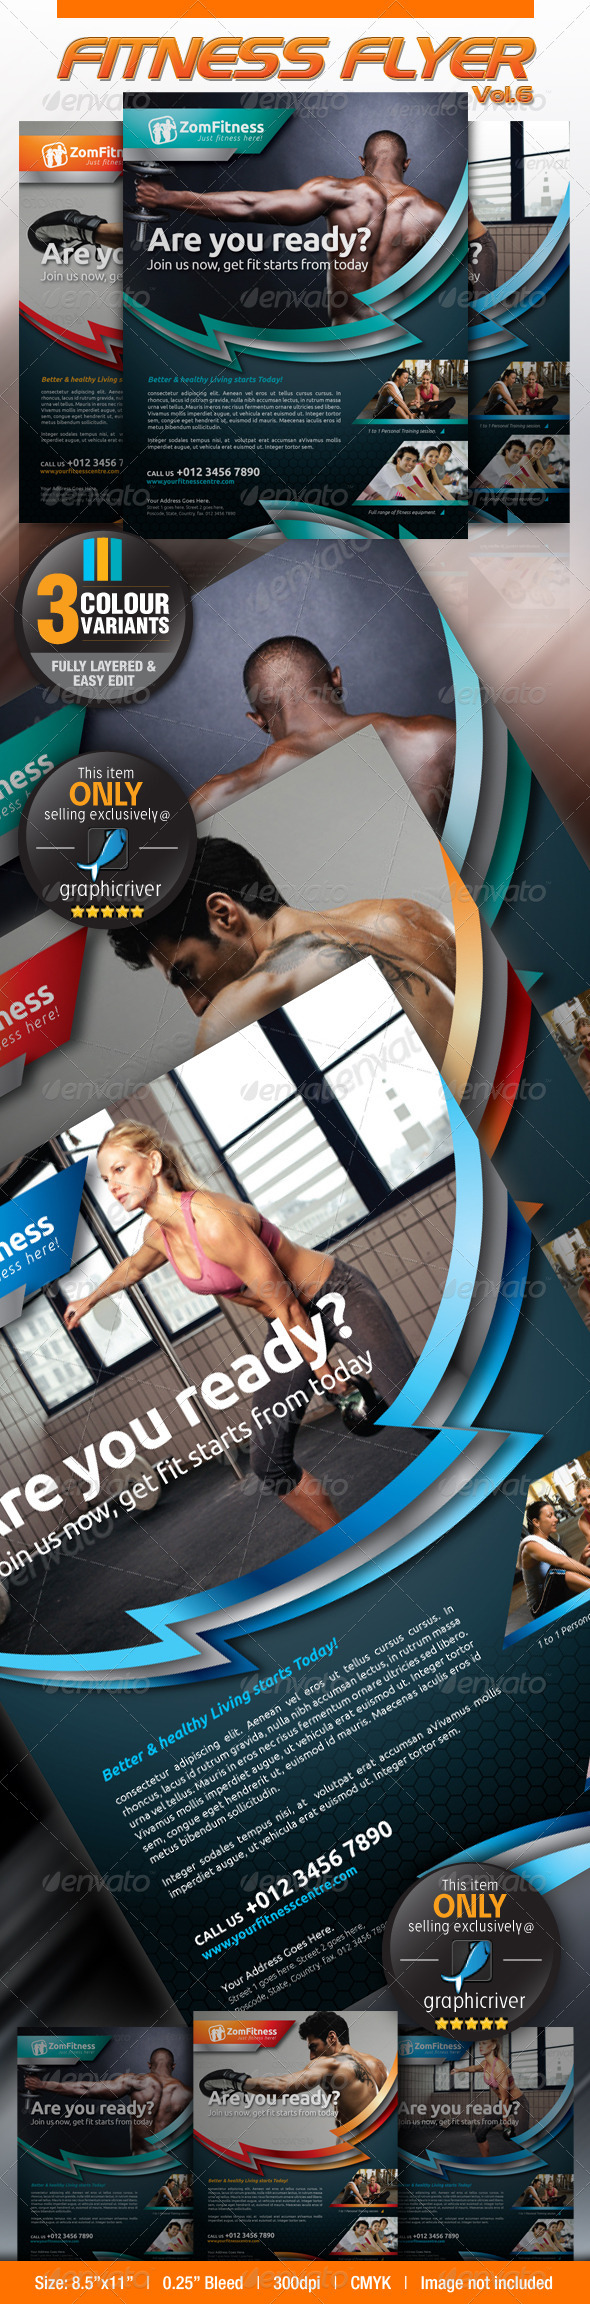 GraphicRiver Fitness Flyer Vol.6 3464266